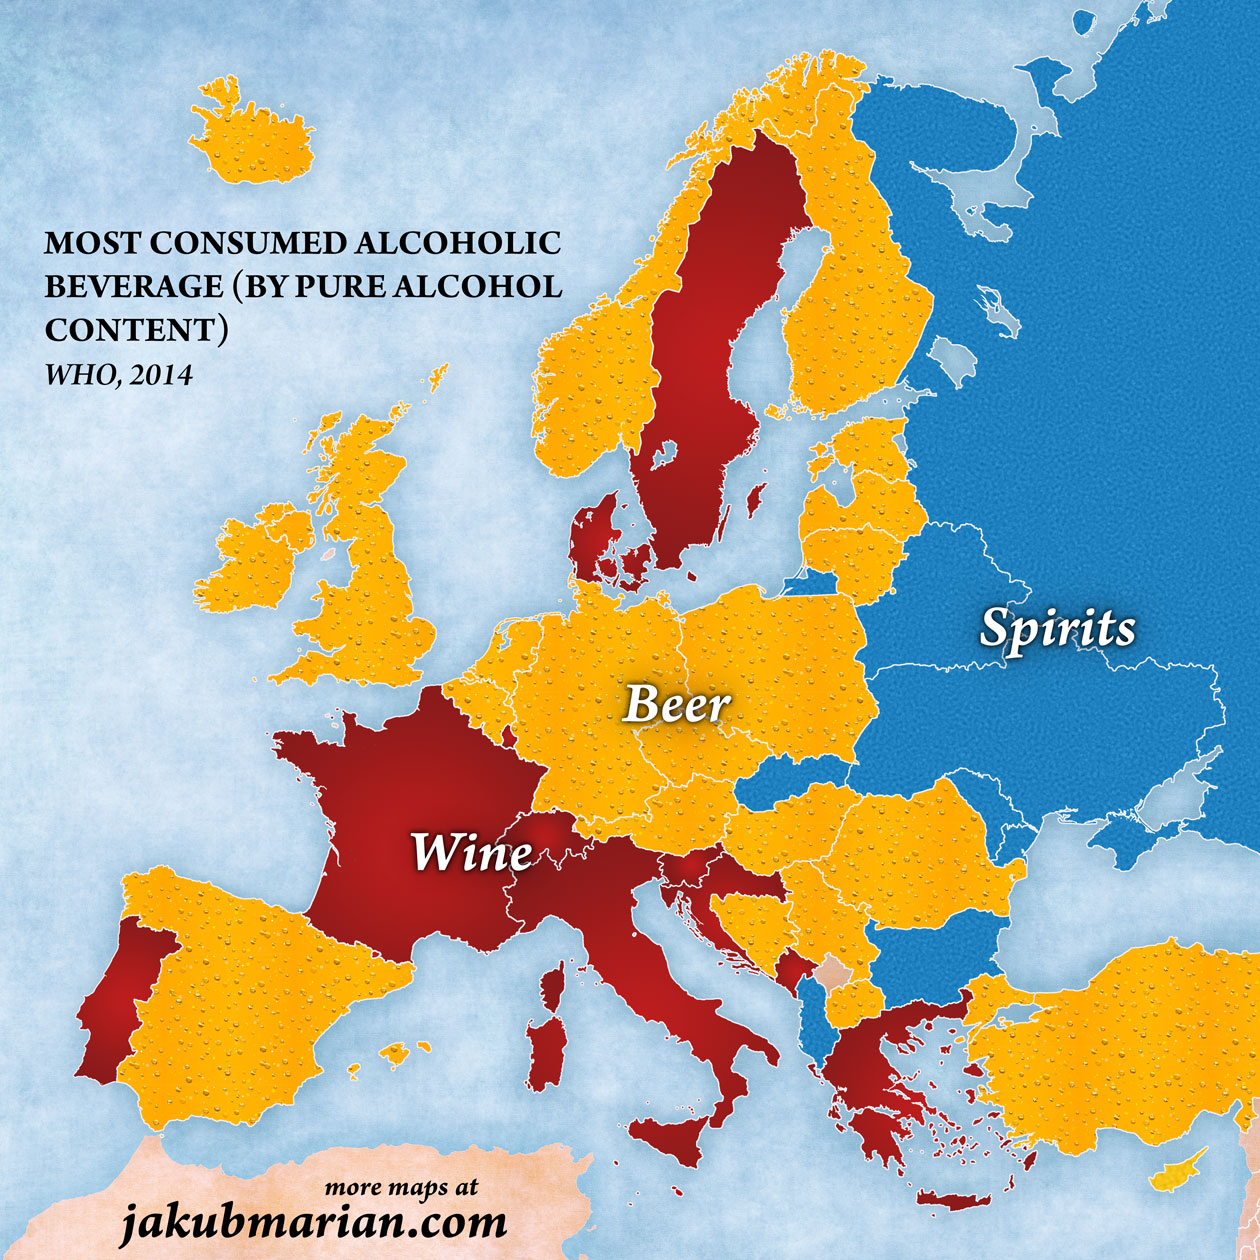 Most commonly consumed alcoholic beverage in Europe